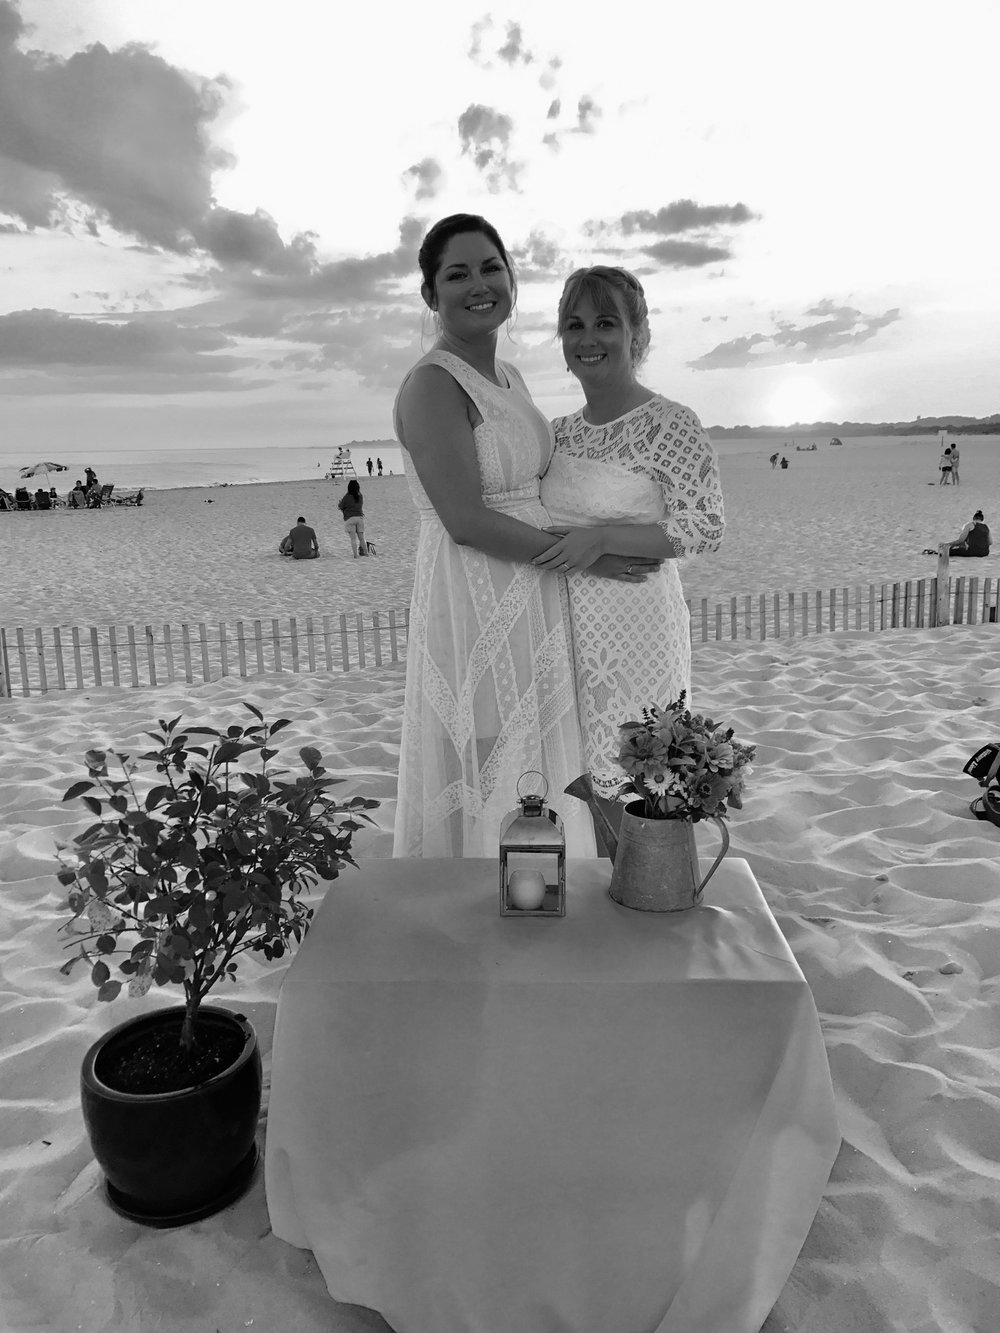 Laura and Jill's gorgeous wedding on the beach in Cape May, New Jersey